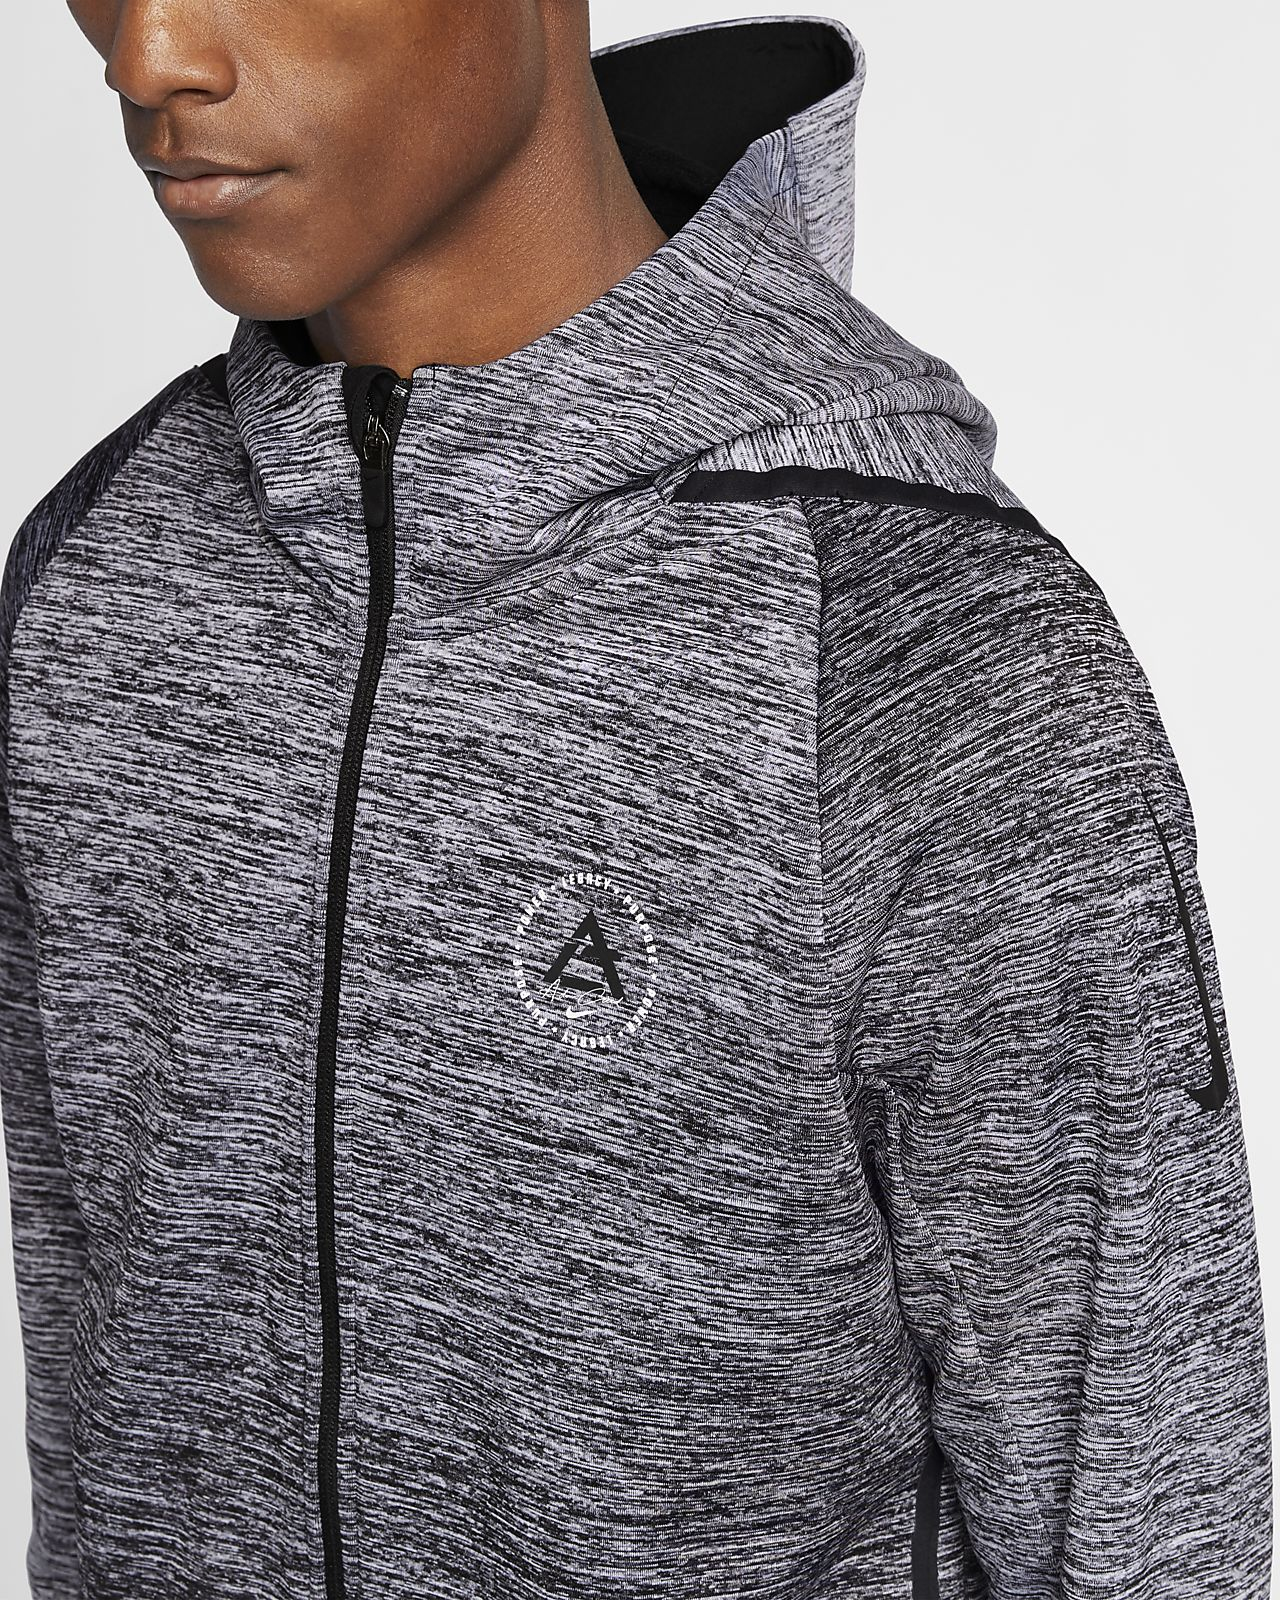 d47f5ba5aaf034 ... Nike Therma Sphere Max Adonis Creed Men s Full-Zip Hooded Training  Jacket